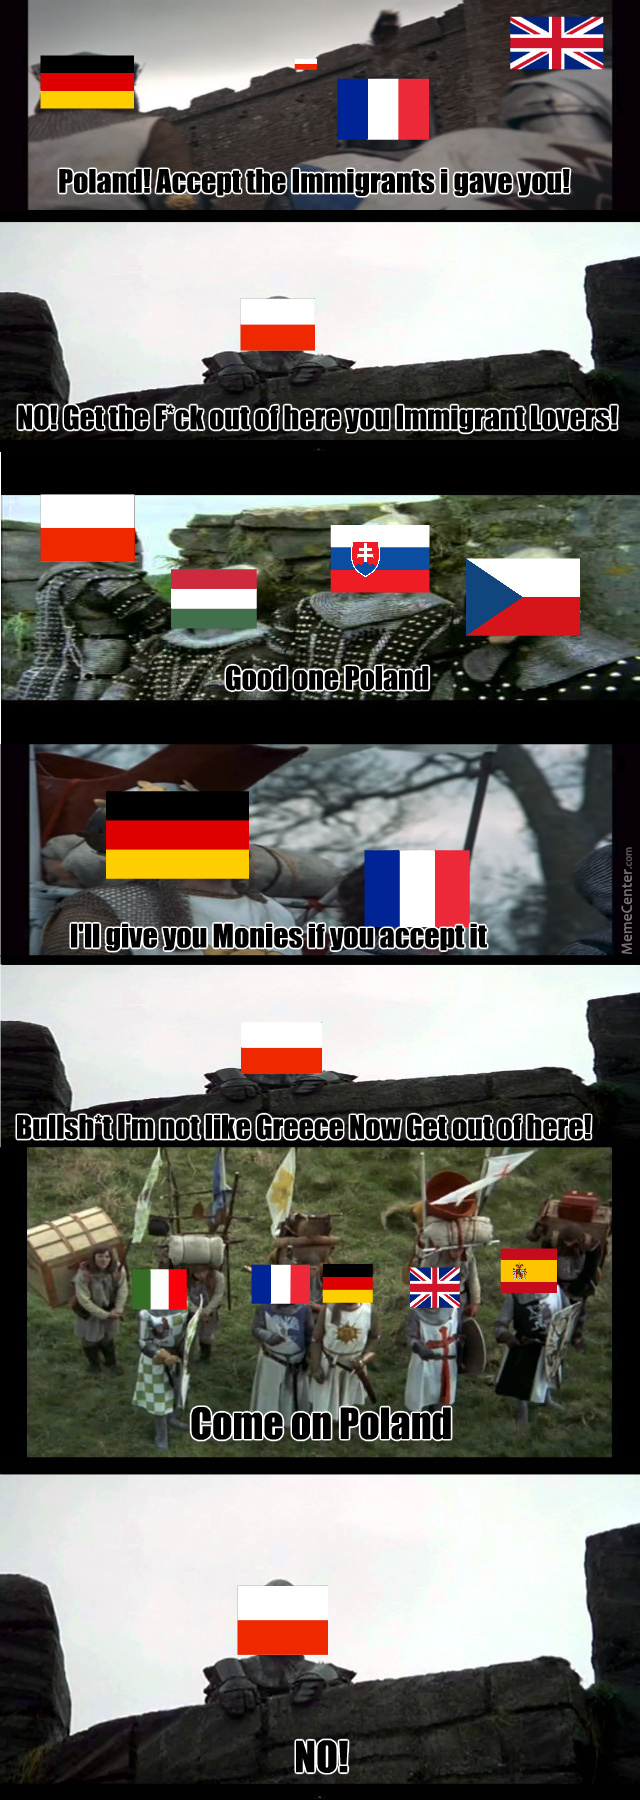 Polish Nationalist Rally In A Nutshell